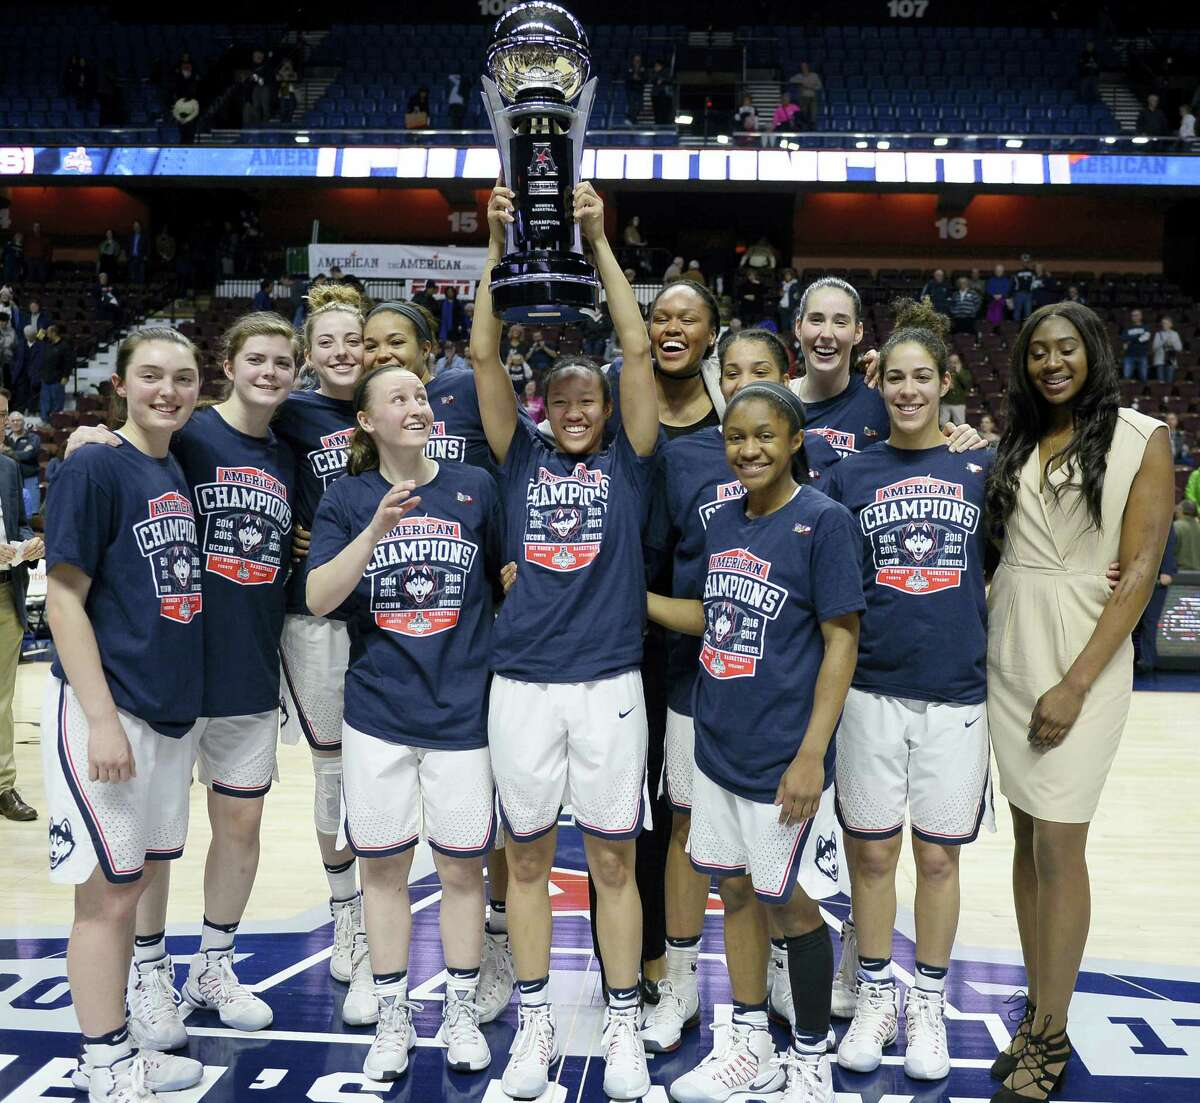 The UConn women's basketball team pose with the American Athletic Conference championship trophy after defeating South Florida in the tournament final at the Mohegan Sun Arena Monday.